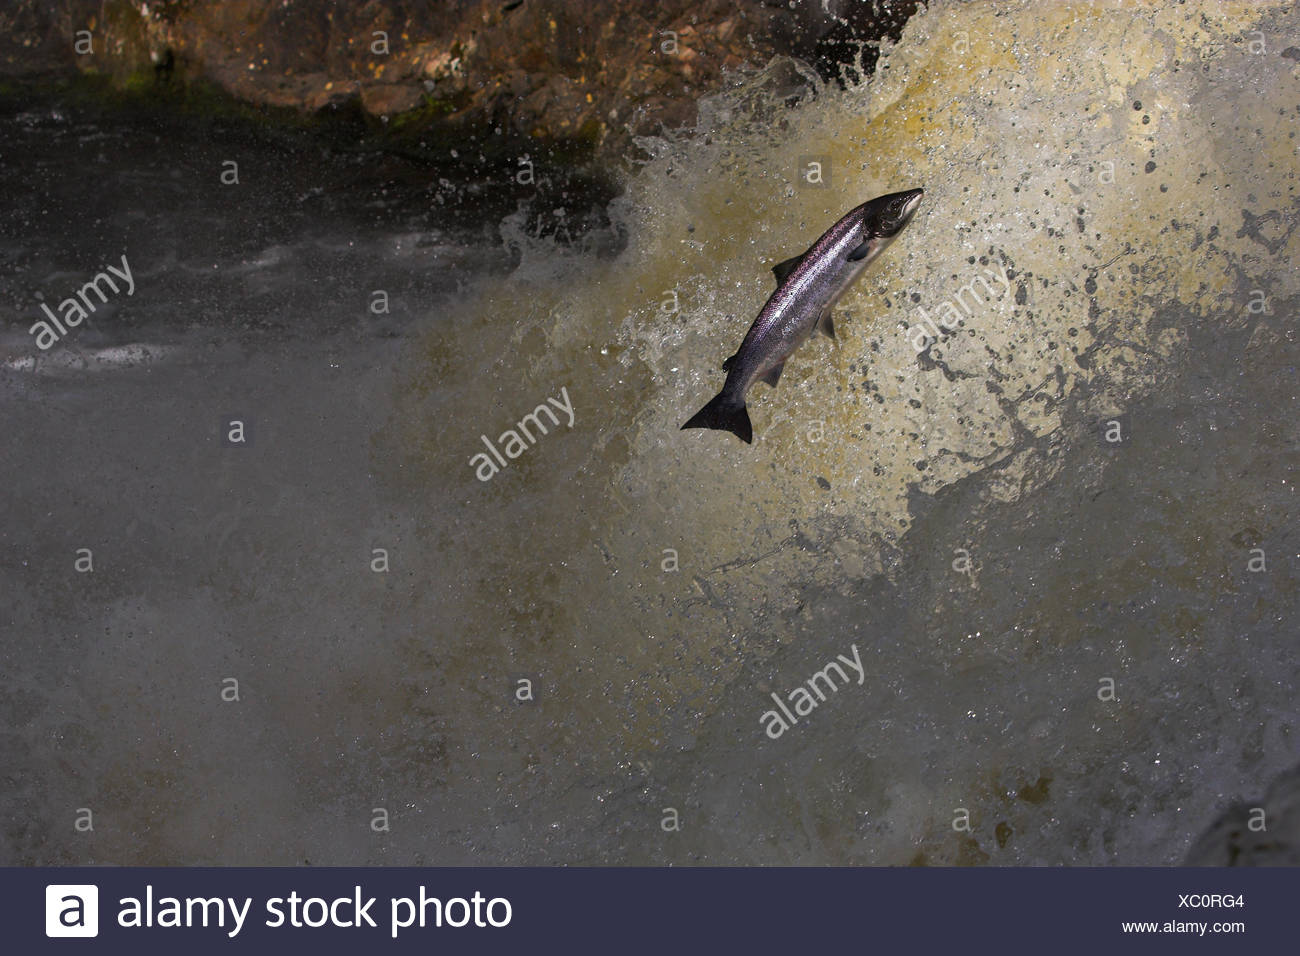 Atlantic salmon (Salmo salar) jumping waterfall during migration to spawn, Scotland - Stock Image